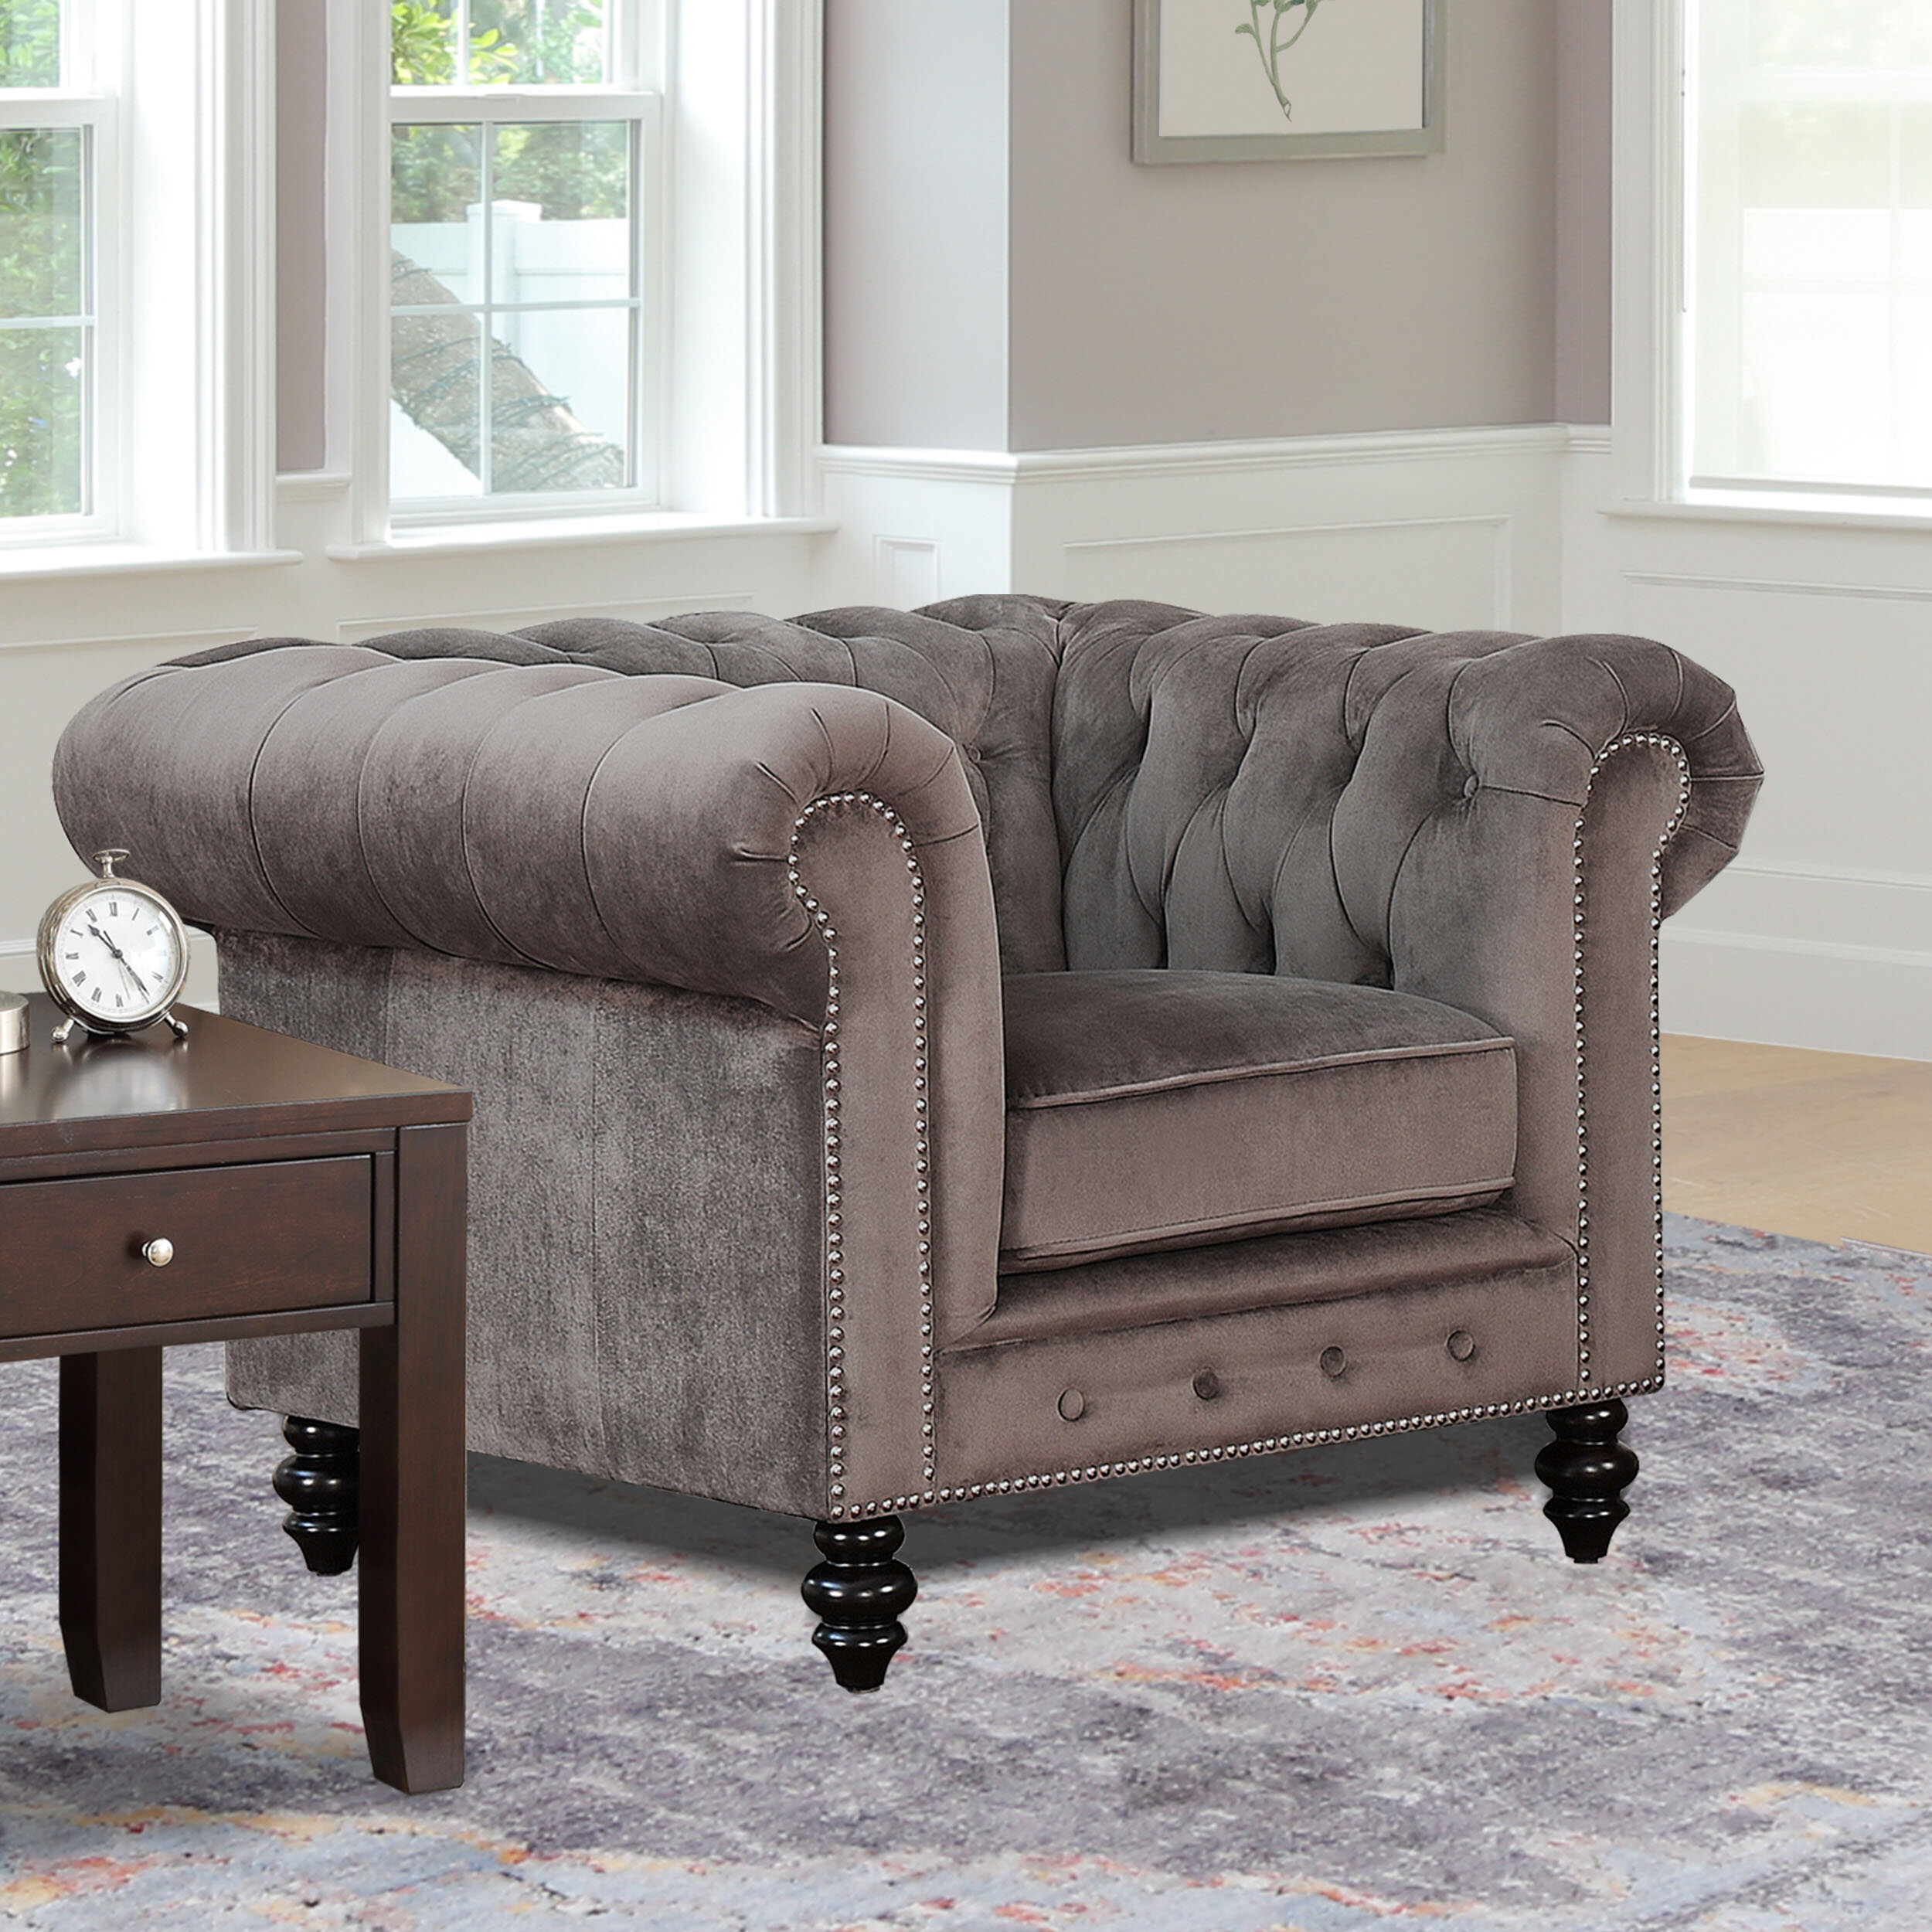 Chesterfield Espresso Wood Accent Chairs You'Ll Love In 2021 Pertaining To Kjellfrid Chesterfield Chairs (View 4 of 15)